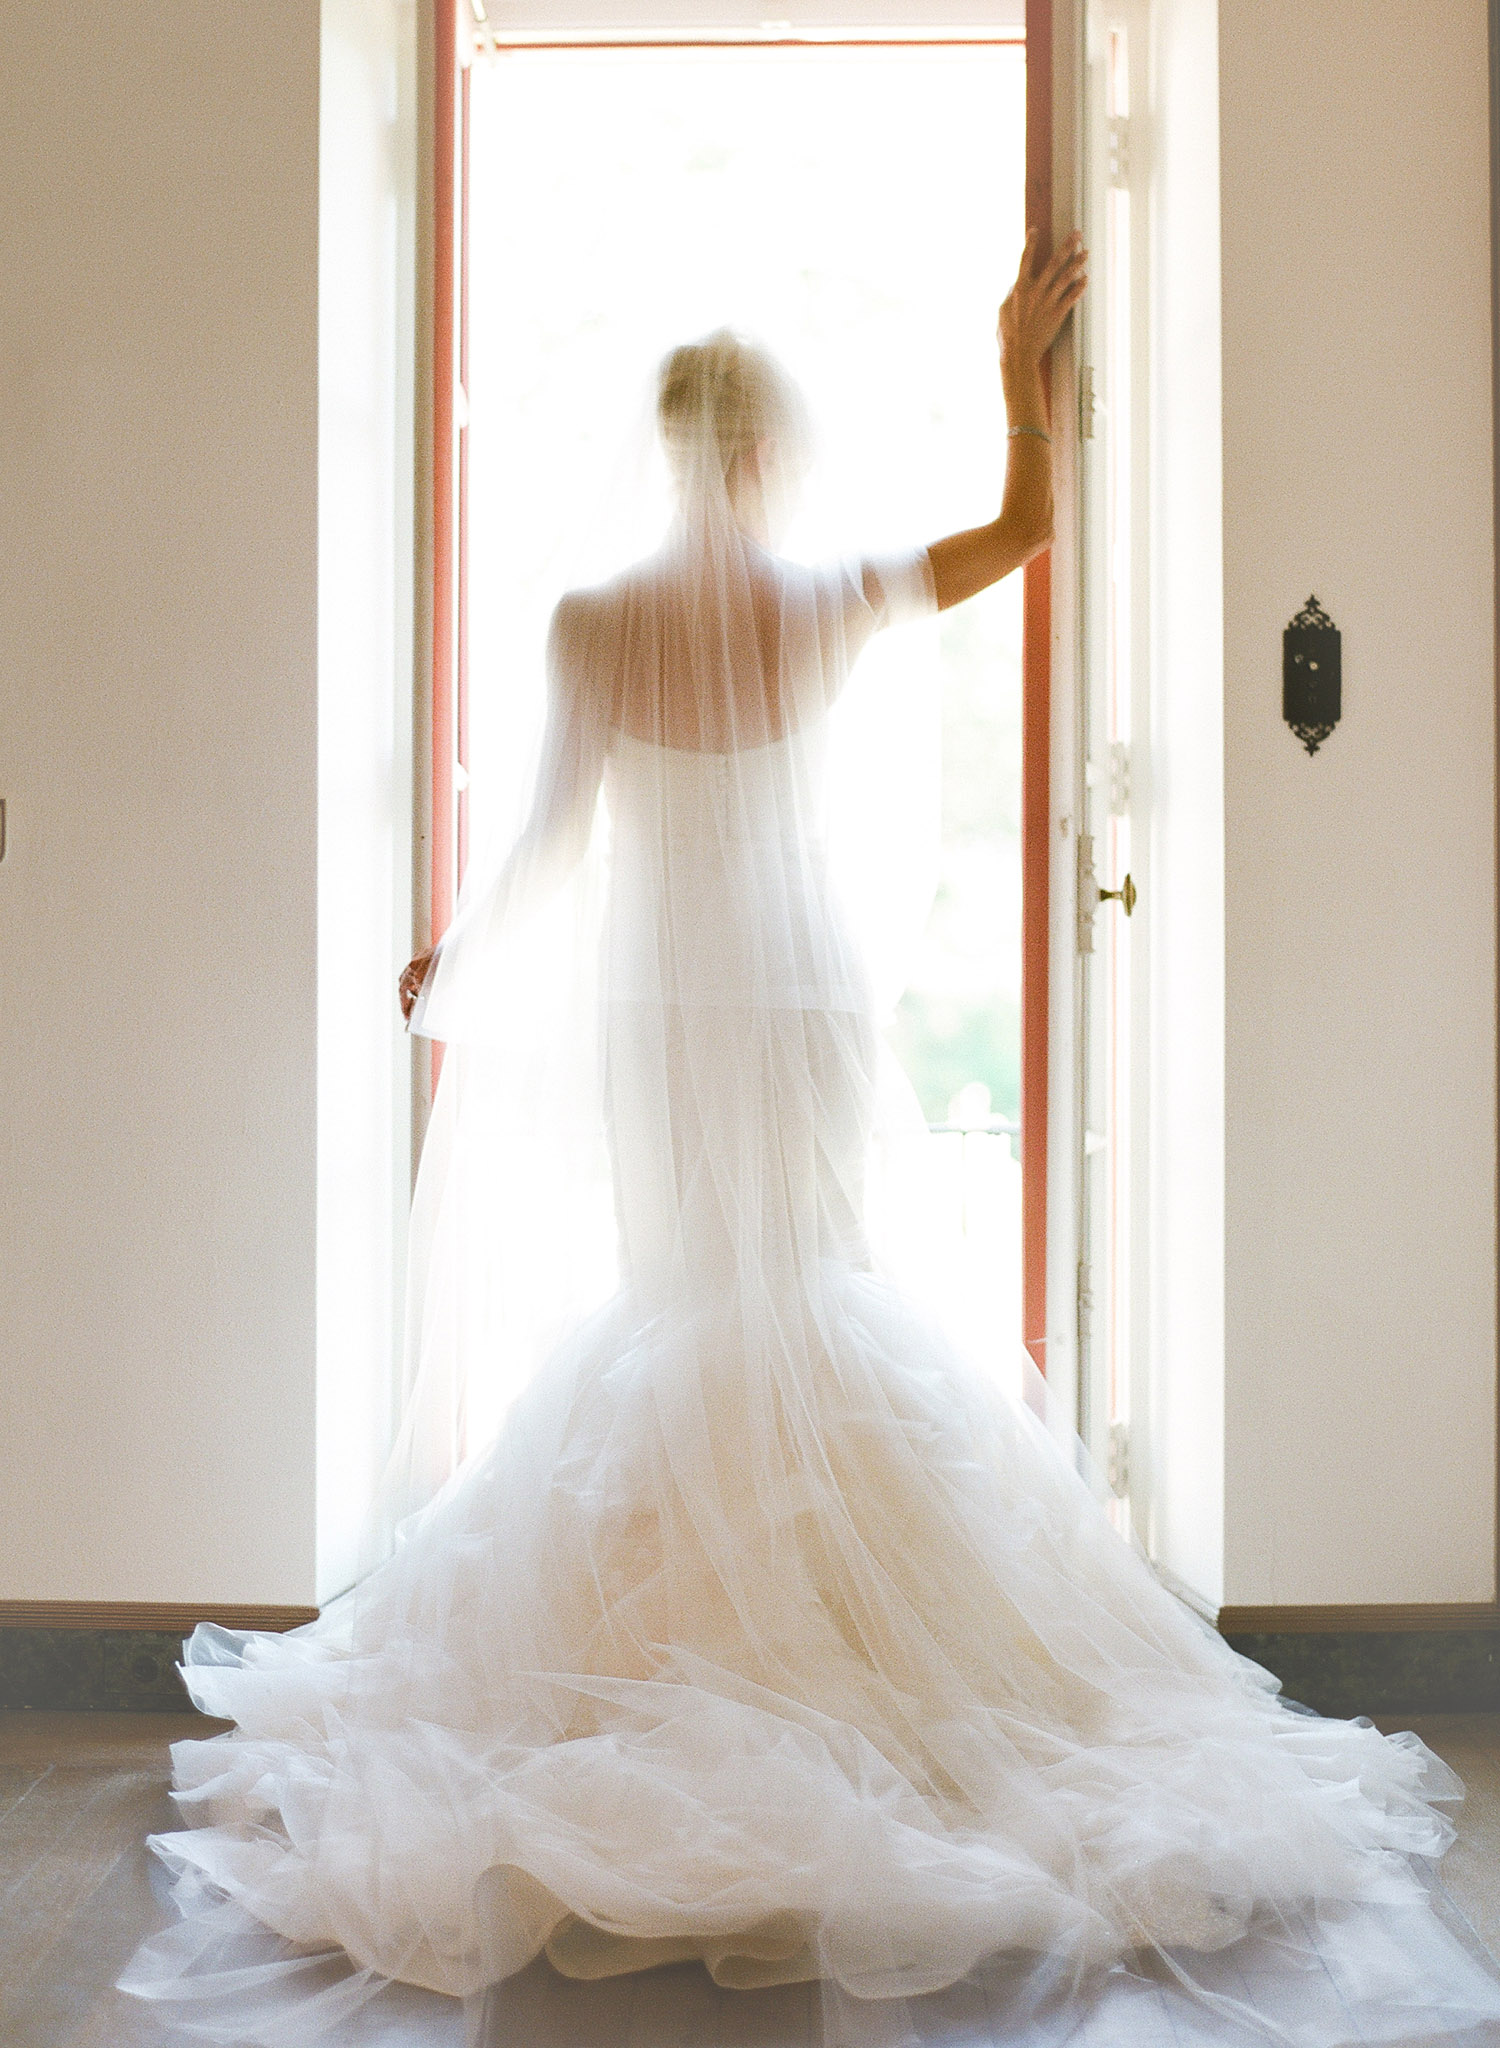 bride stands in a doorway with her huge wedding gown and veil at this Italian Destination Wedding at the Villa Terrace where Destination wedding photographer Lexia Frank photographs the wedding on film as she is a film photographer for weddings